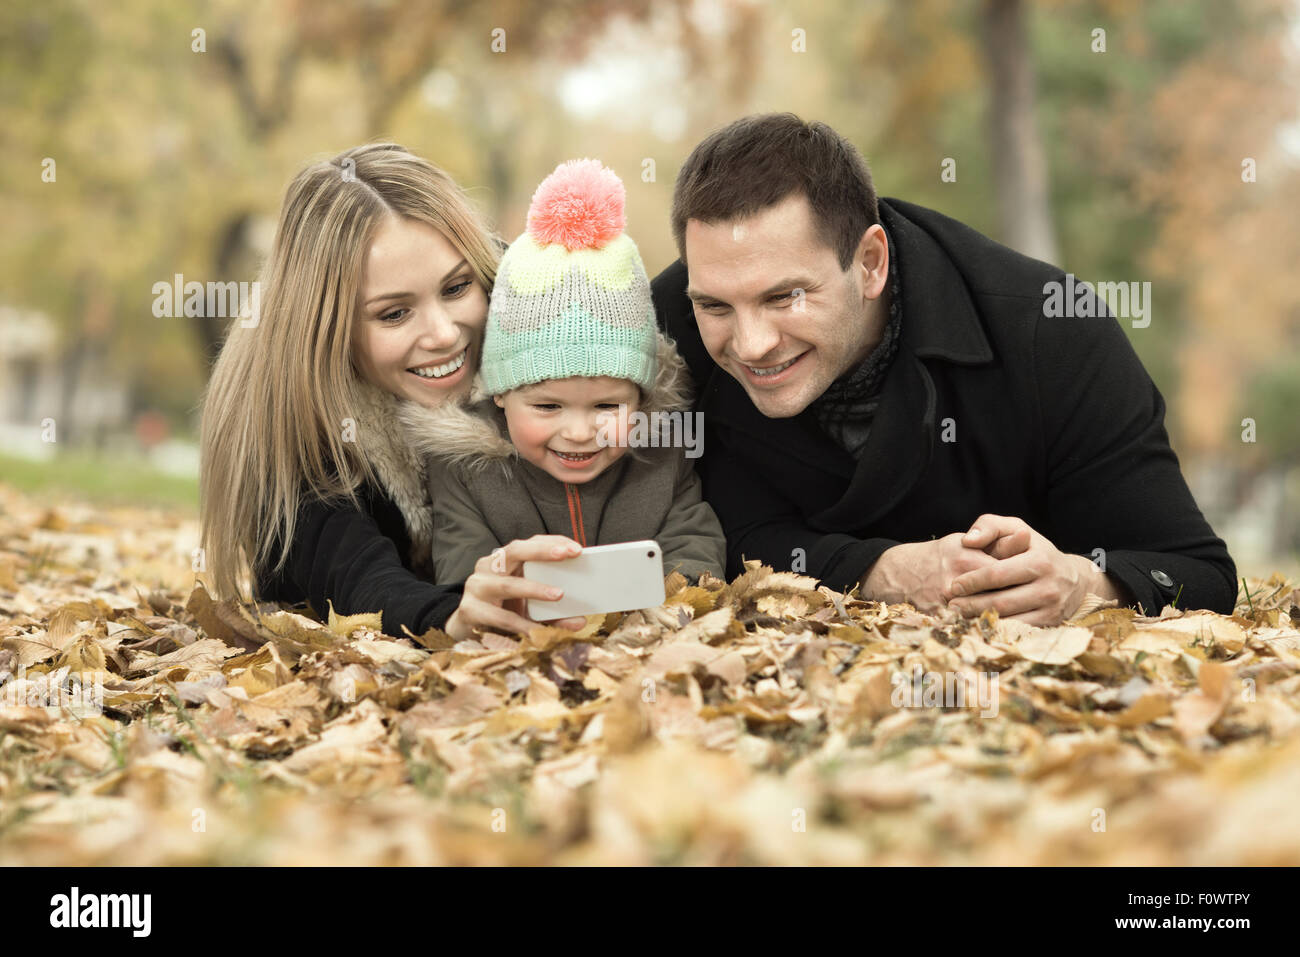 happy family with little child take Selfie on telephone, outing in autumn park - Stock Image